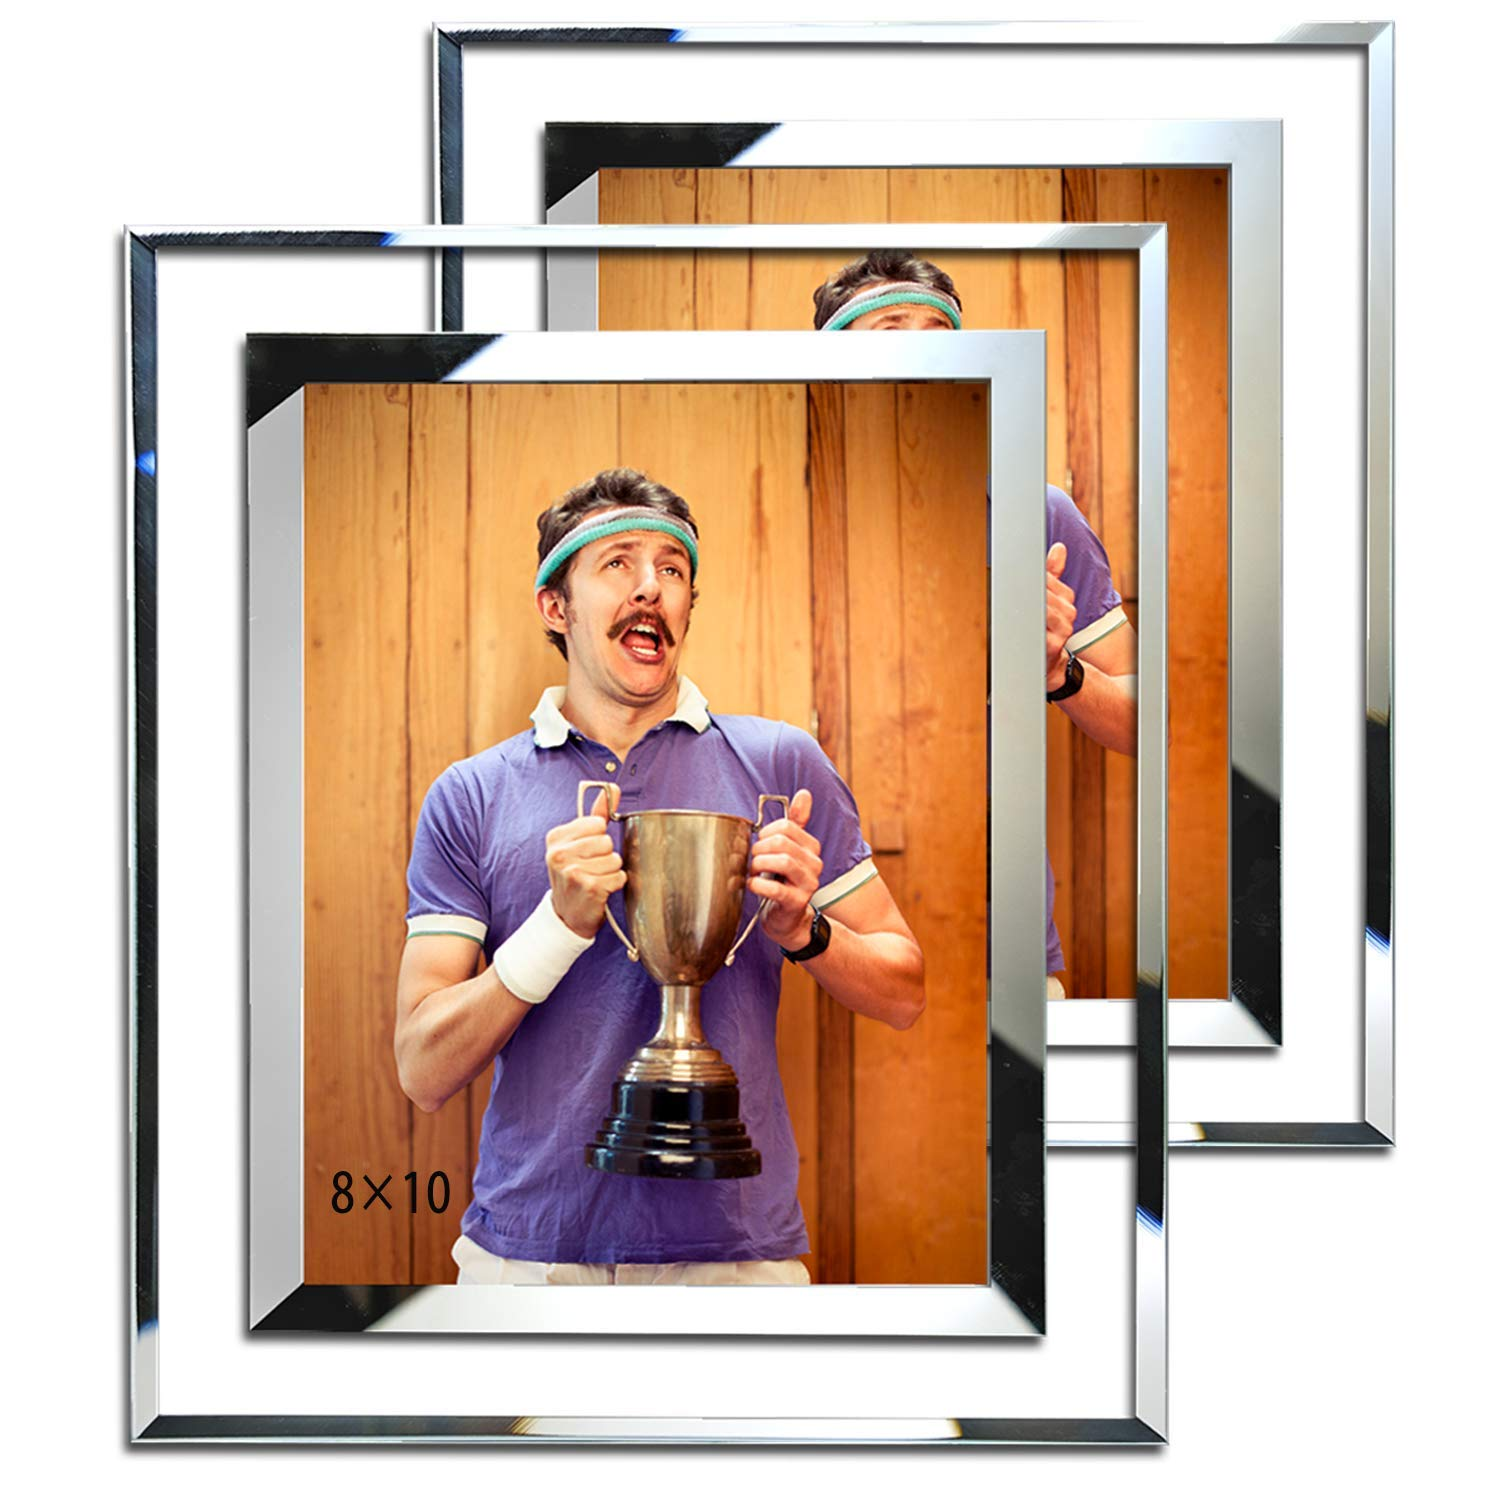 Simon's Shop 8x10 Picture Frame Glass Picture Frames 8x10 Wall and Tabletop Display Frame - 2 Pack by Simon's Shop